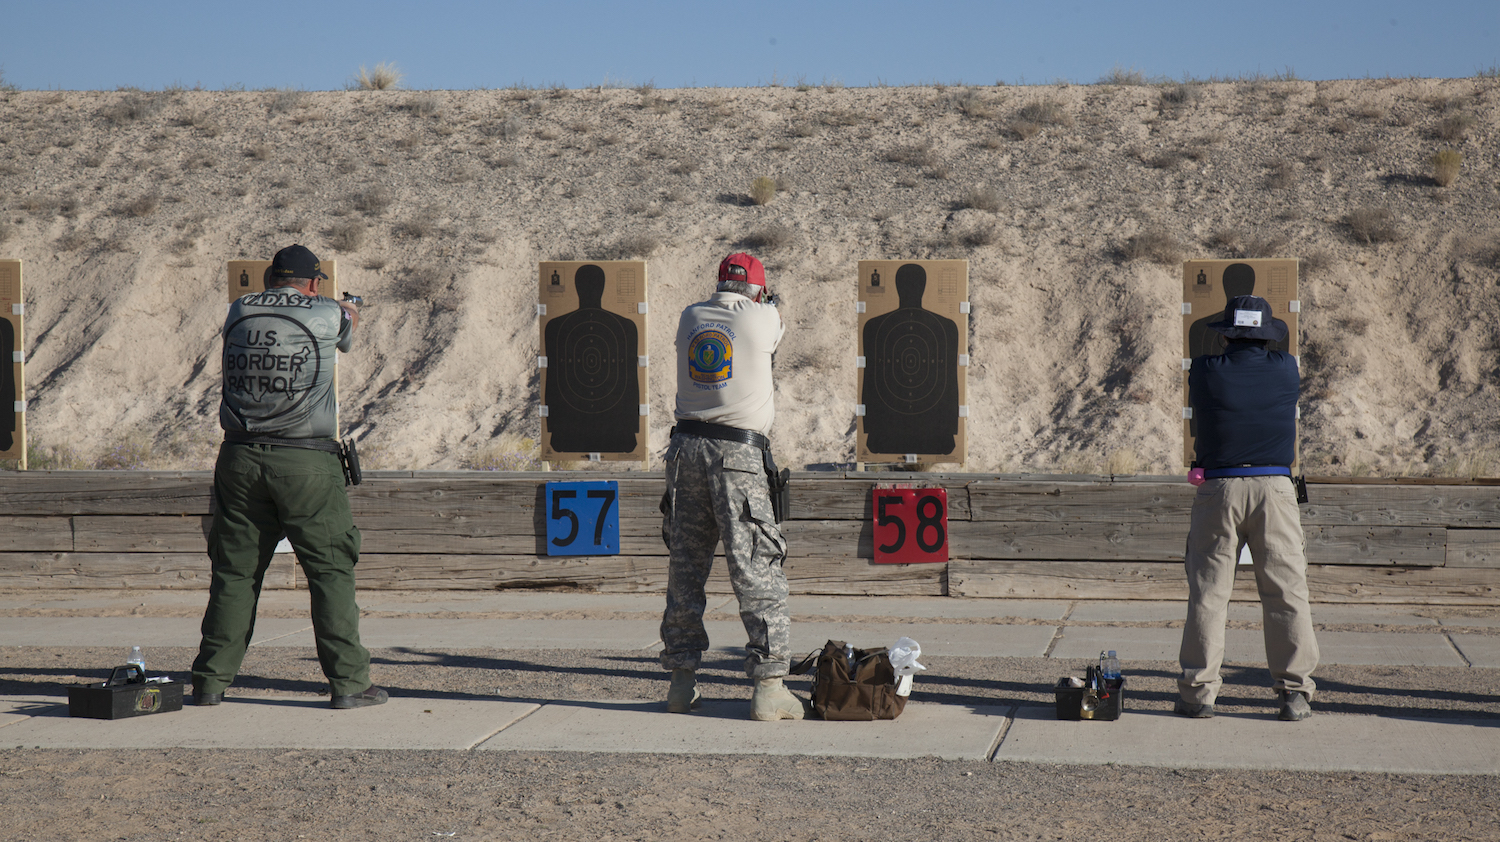 NRA National Police Shooting Championship Returns For 55th Year In Albuquerque